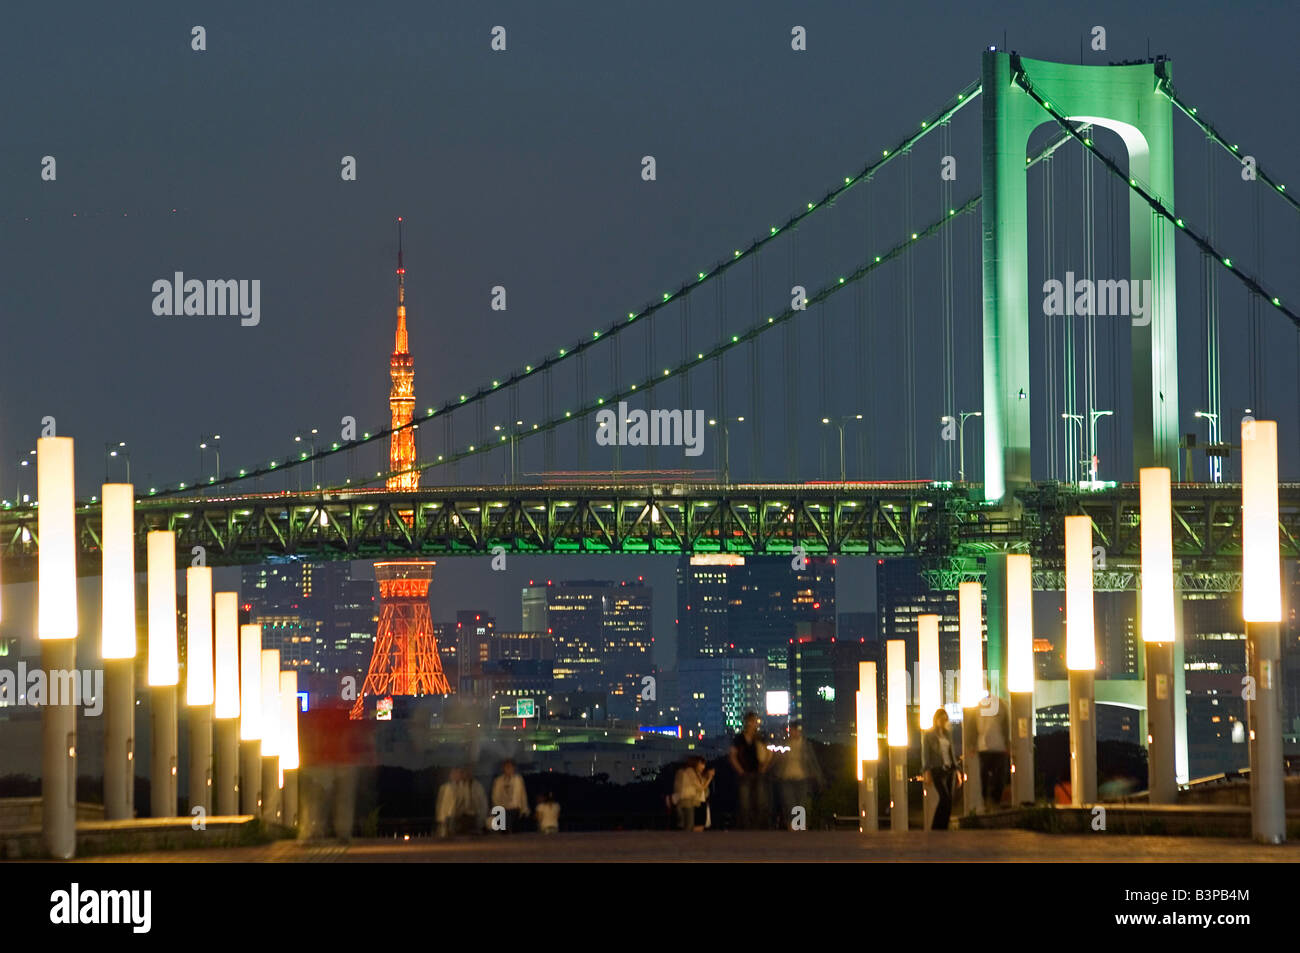 Japan, Tokyo, Odaiba . Rainbow Bridge and Tokyo Tower, people in the foreground taking an evening stroll. - Stock Image